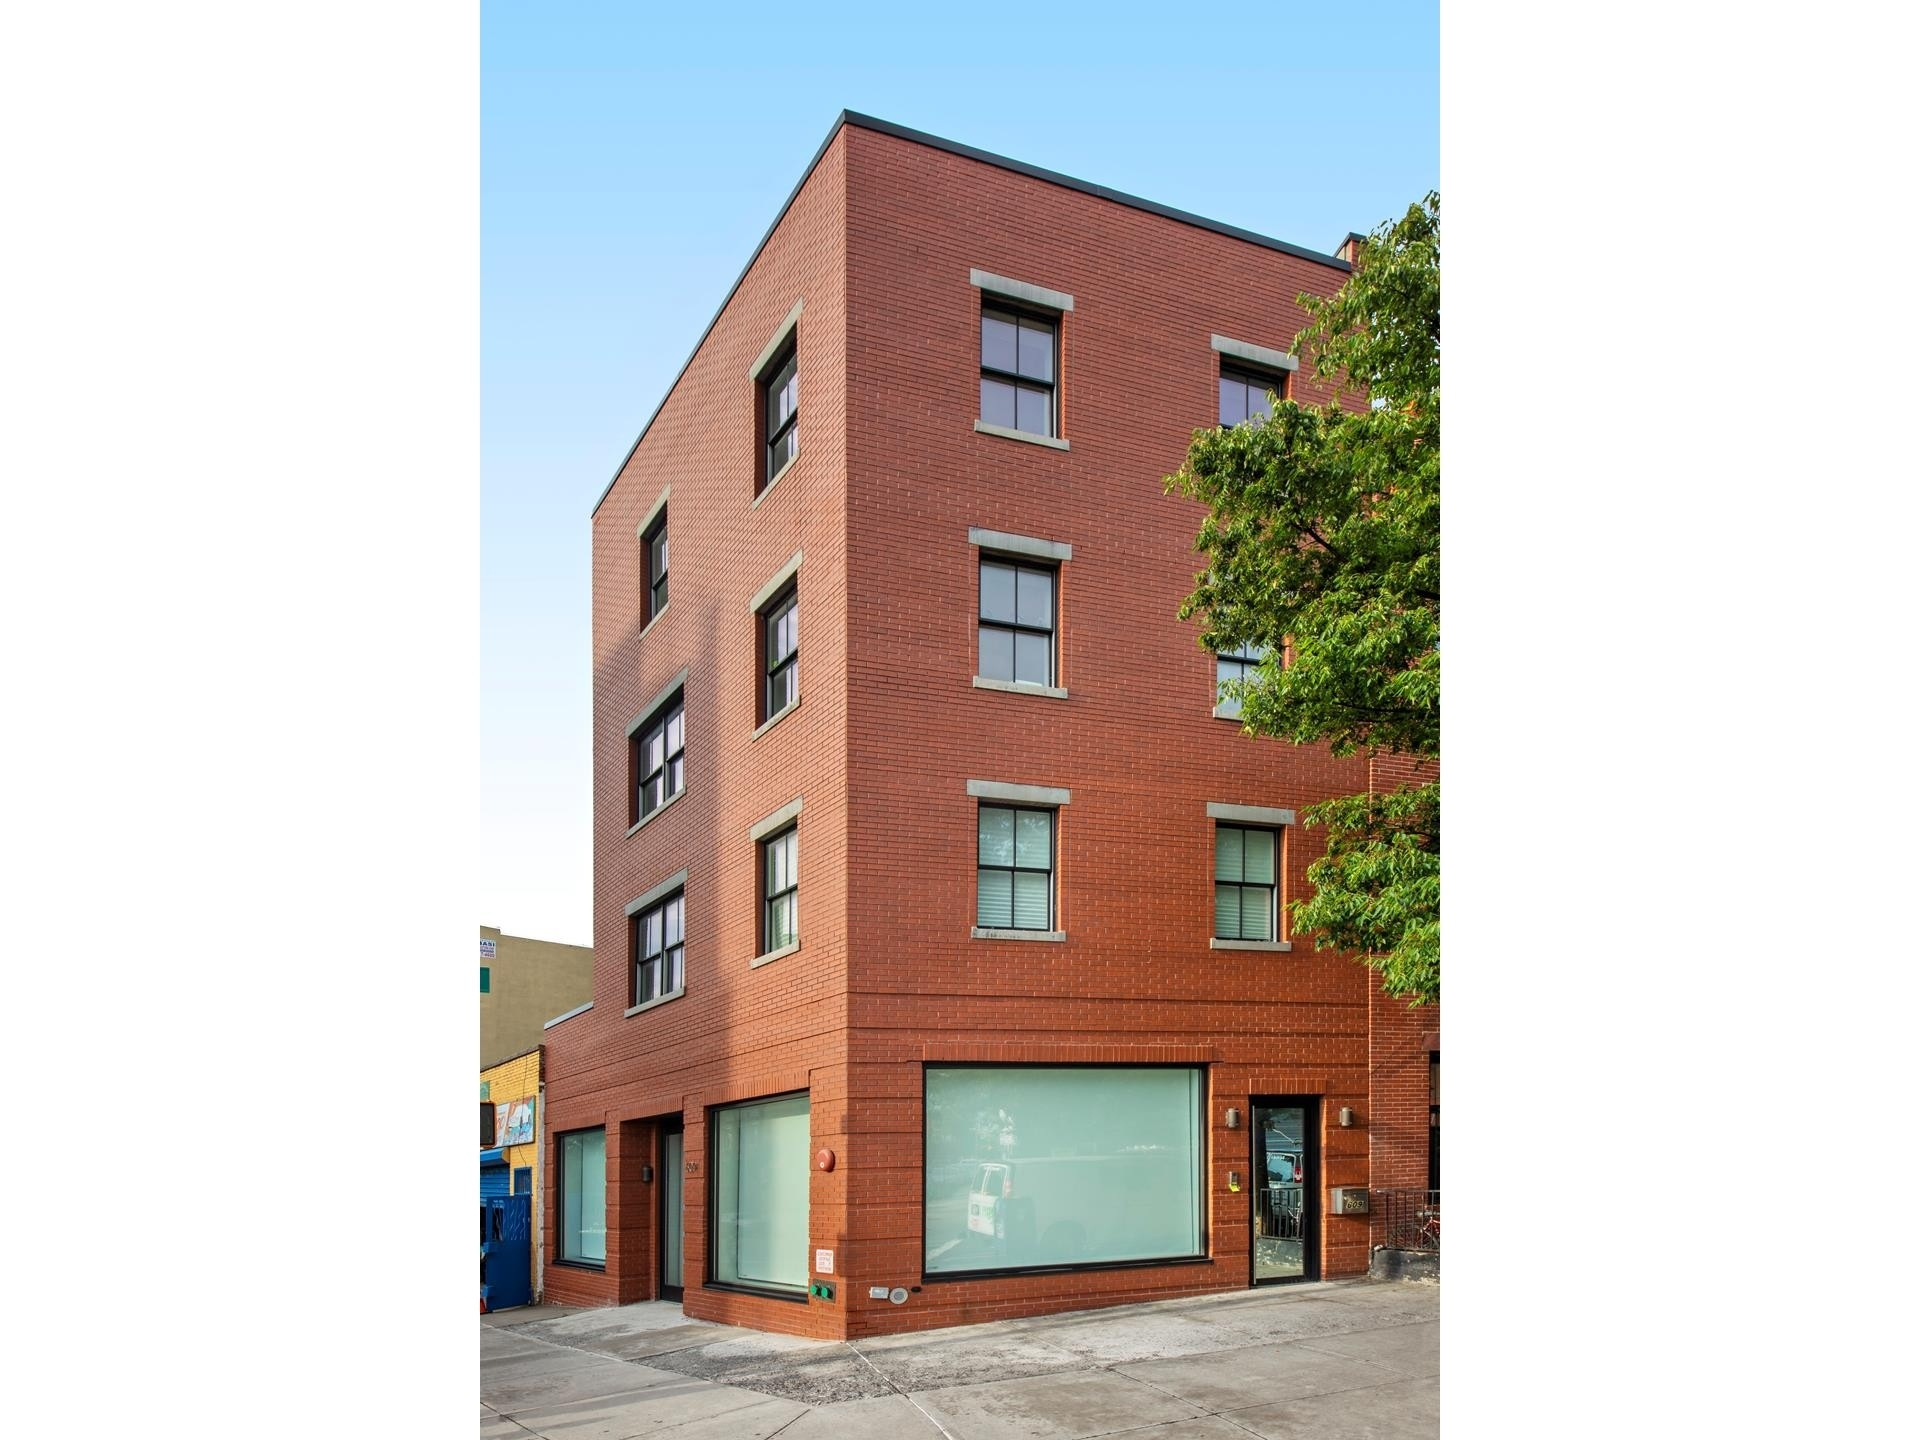 Property at 609 WASHINGTON AVE , TOWNHOUSE Prospect Heights, Brooklyn, NY 11238